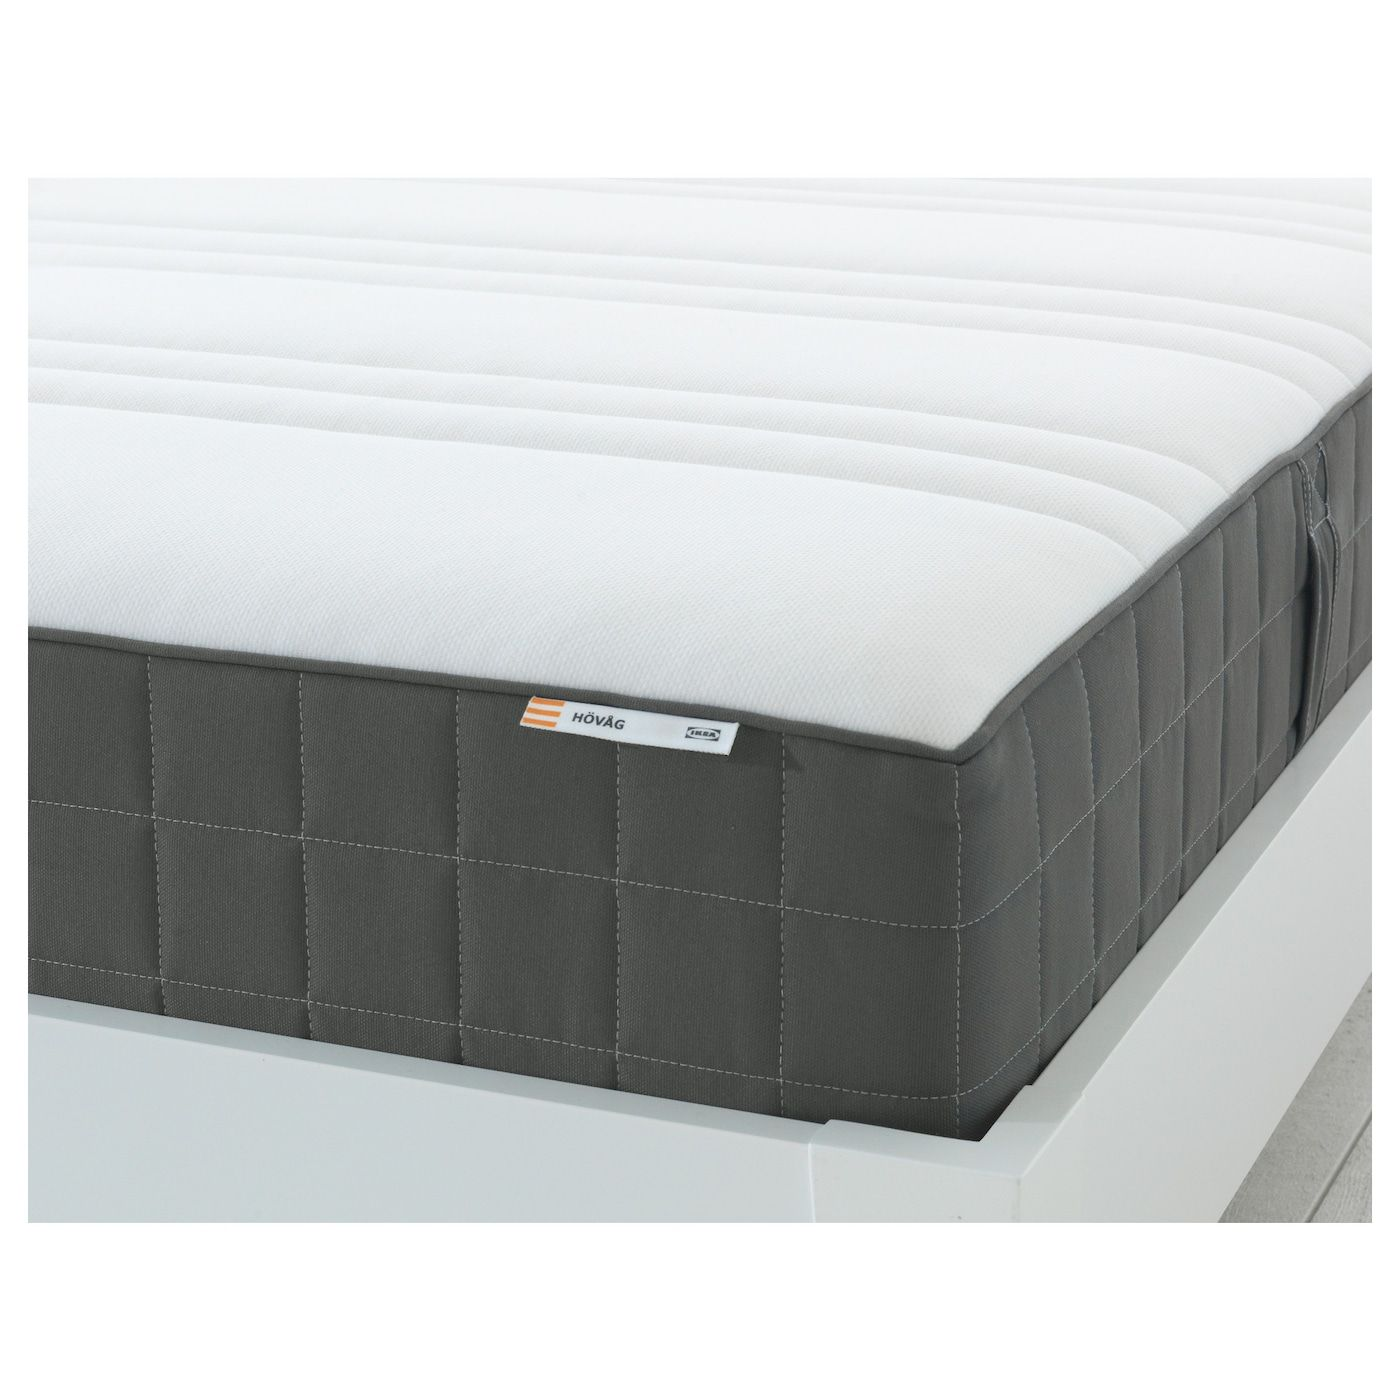 Hovag Firm Dark Grey Pocket Sprung Mattress Standard King Ikea Pocket Spring Mattress Mattress Ikea